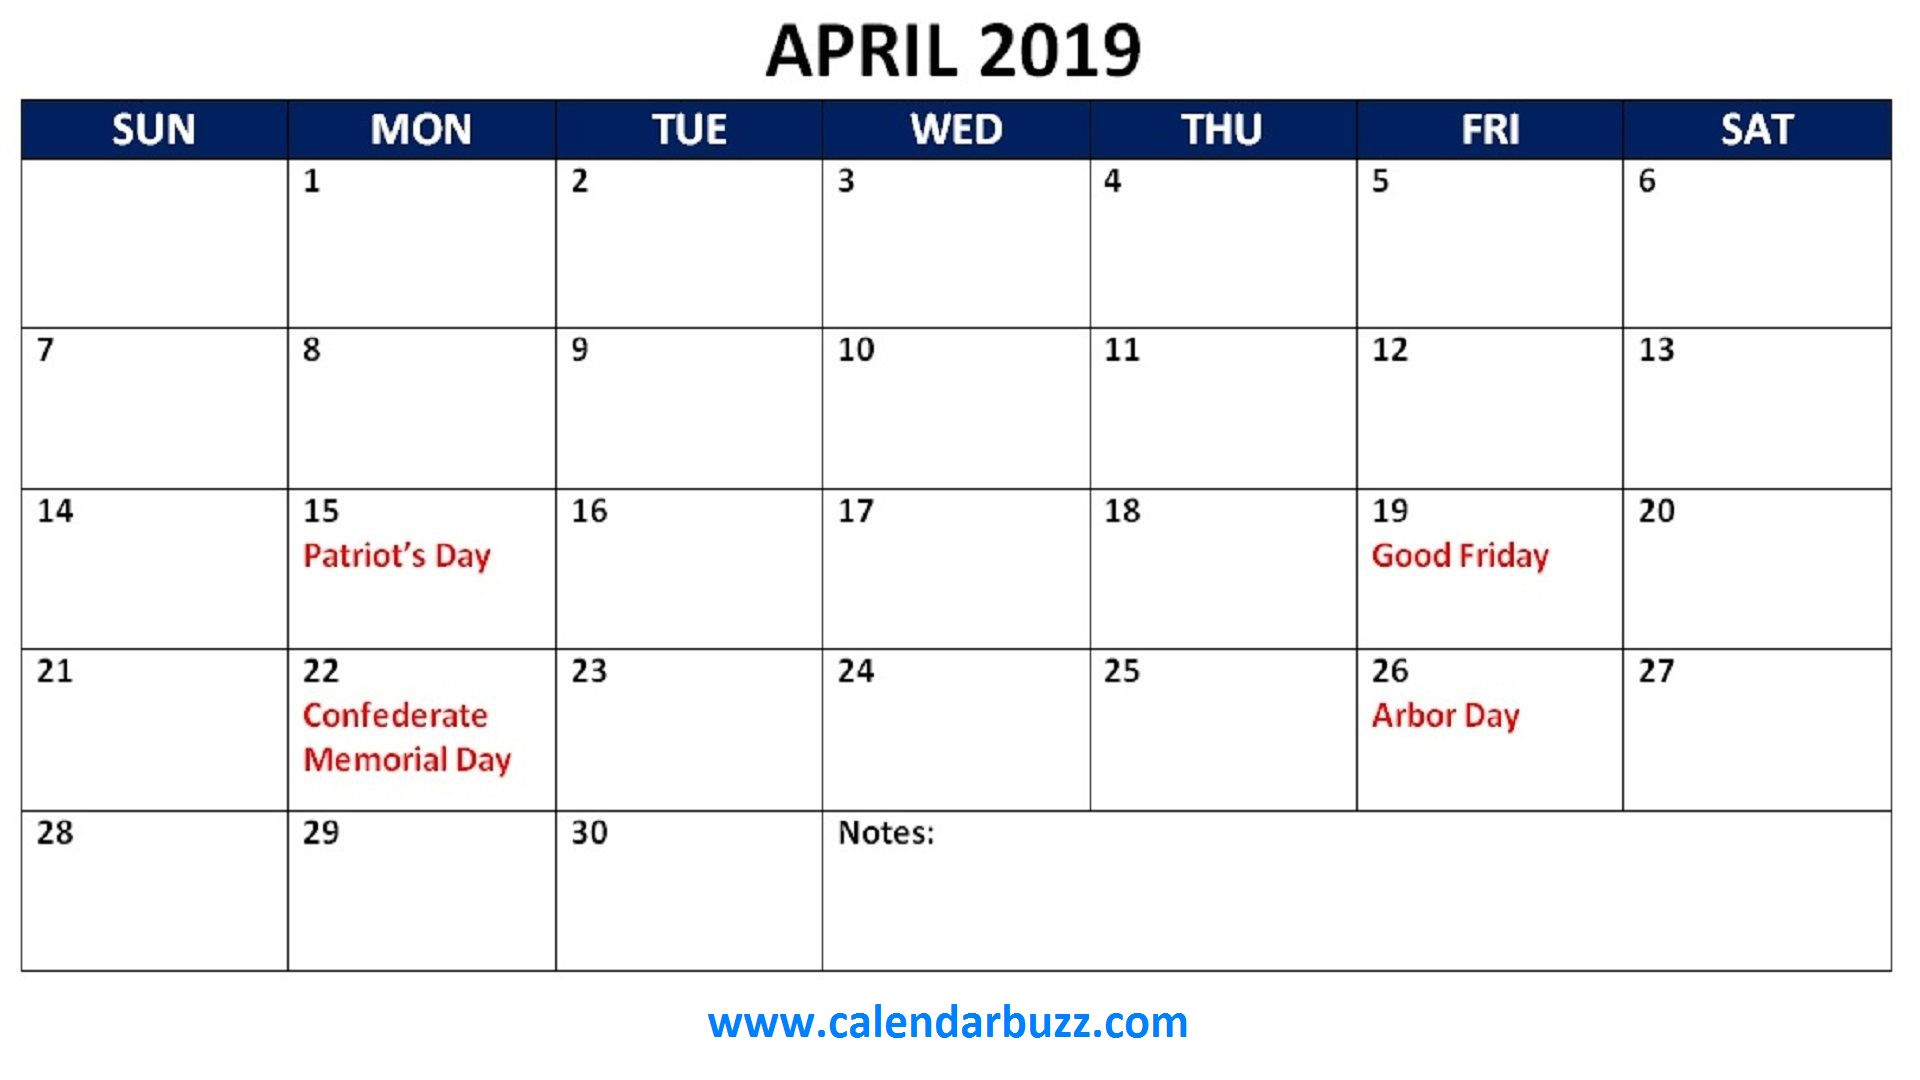 April 2019 Holidays Calendar Printable